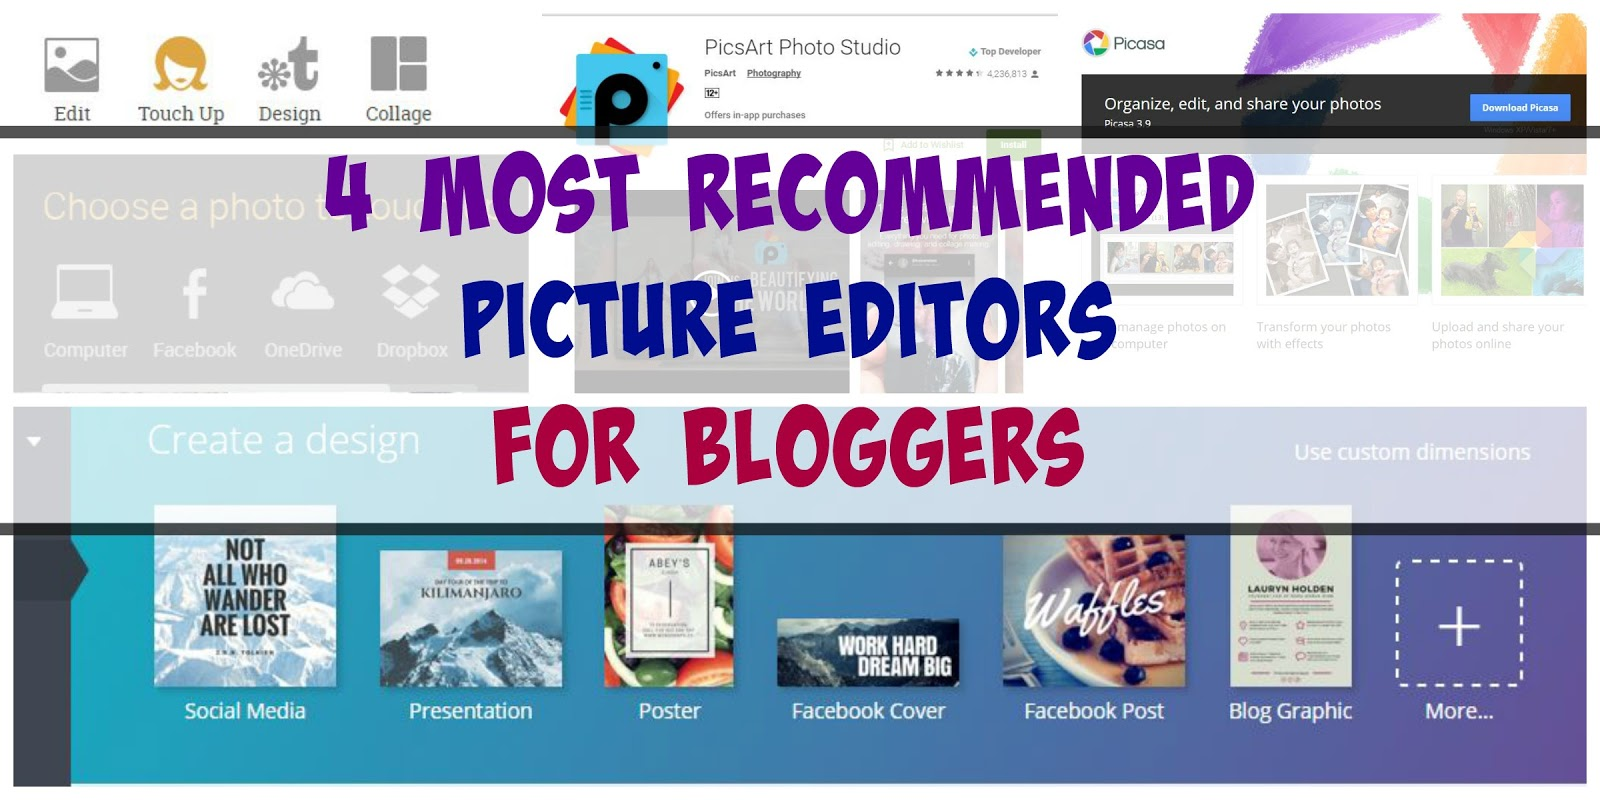 EveryMom'sPage: 4 Most Recommended Picture Editors for Bloggers